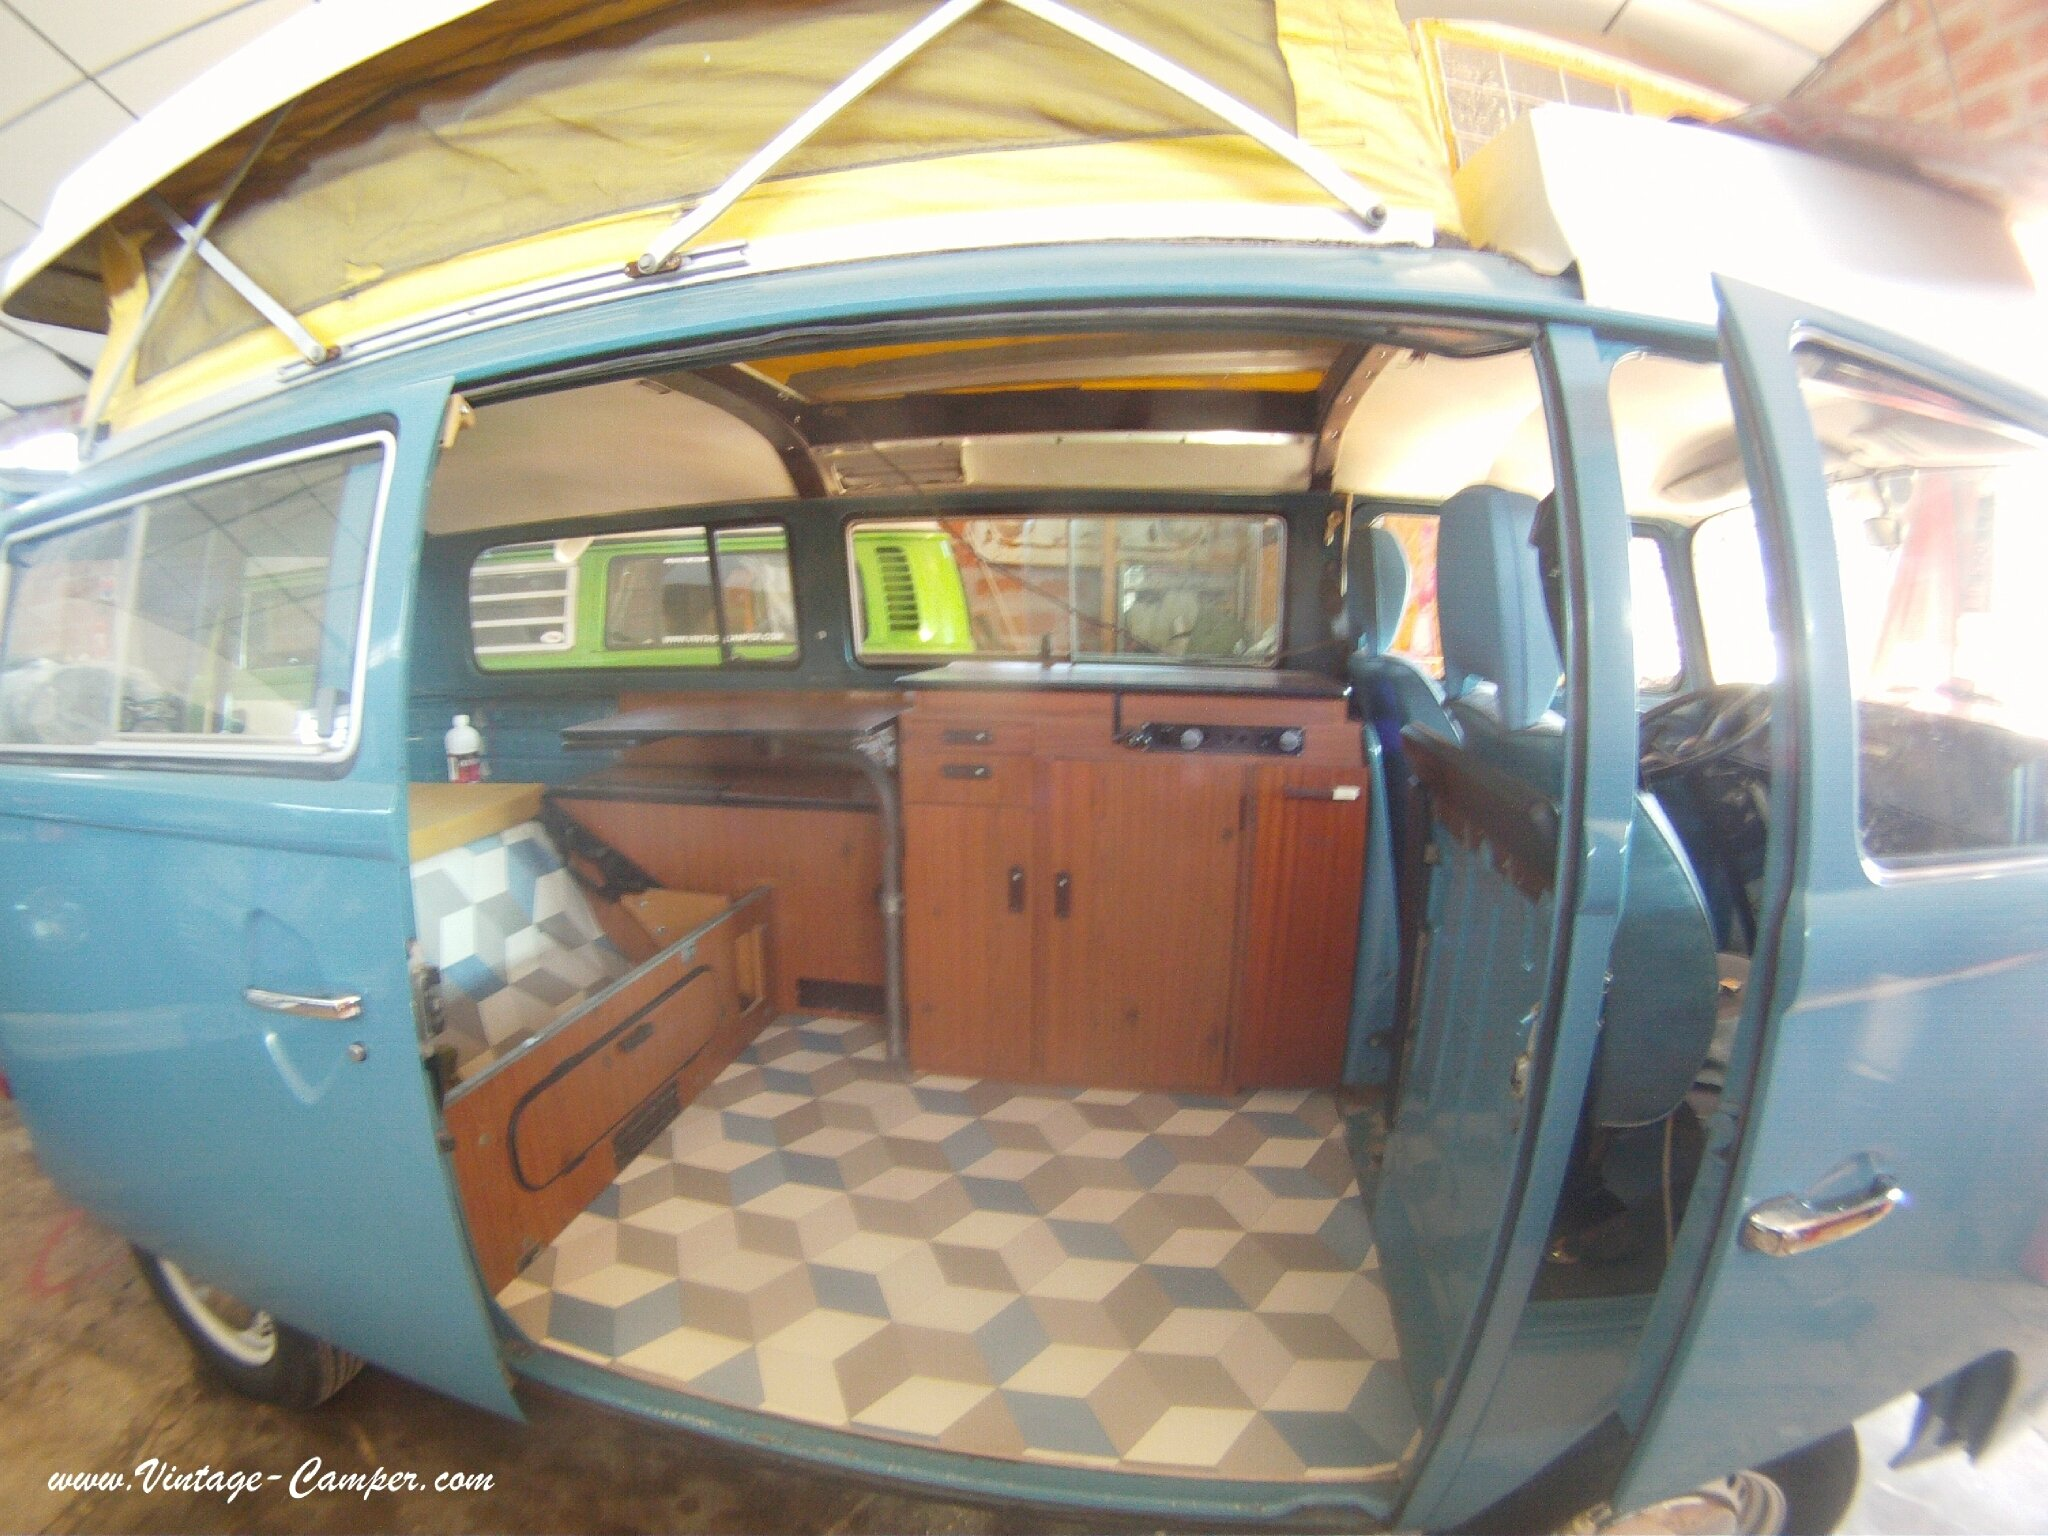 am nagement riviera combi vw vintage camper. Black Bedroom Furniture Sets. Home Design Ideas